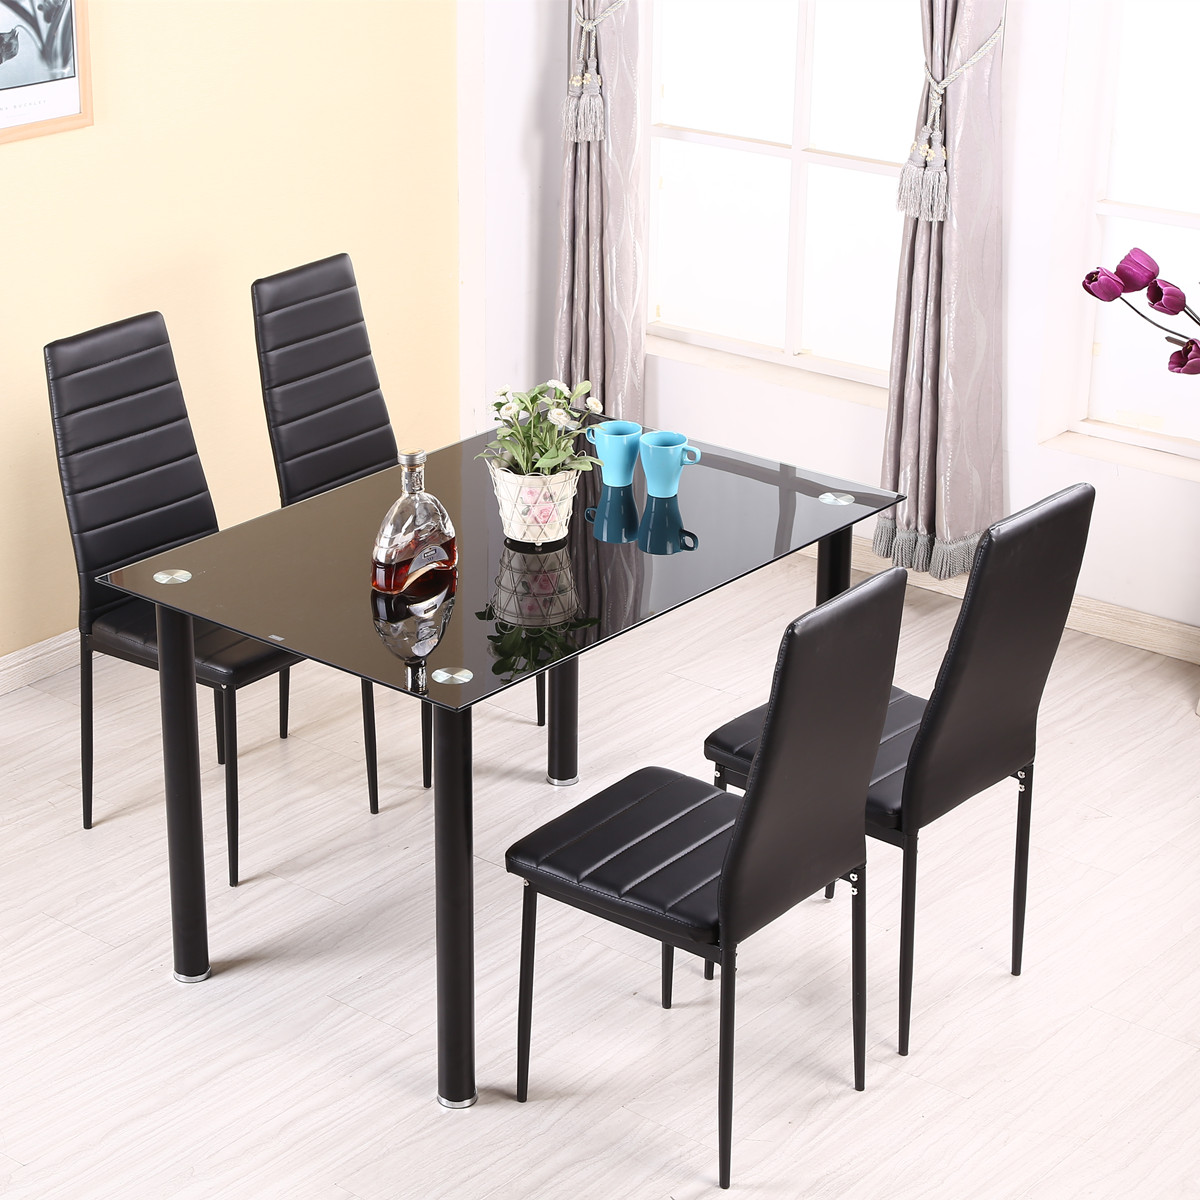 panana-dining-table-set-with-4-6-pcs-chairs-faux-leather-high-metal-leg-padded-seat-kitchen